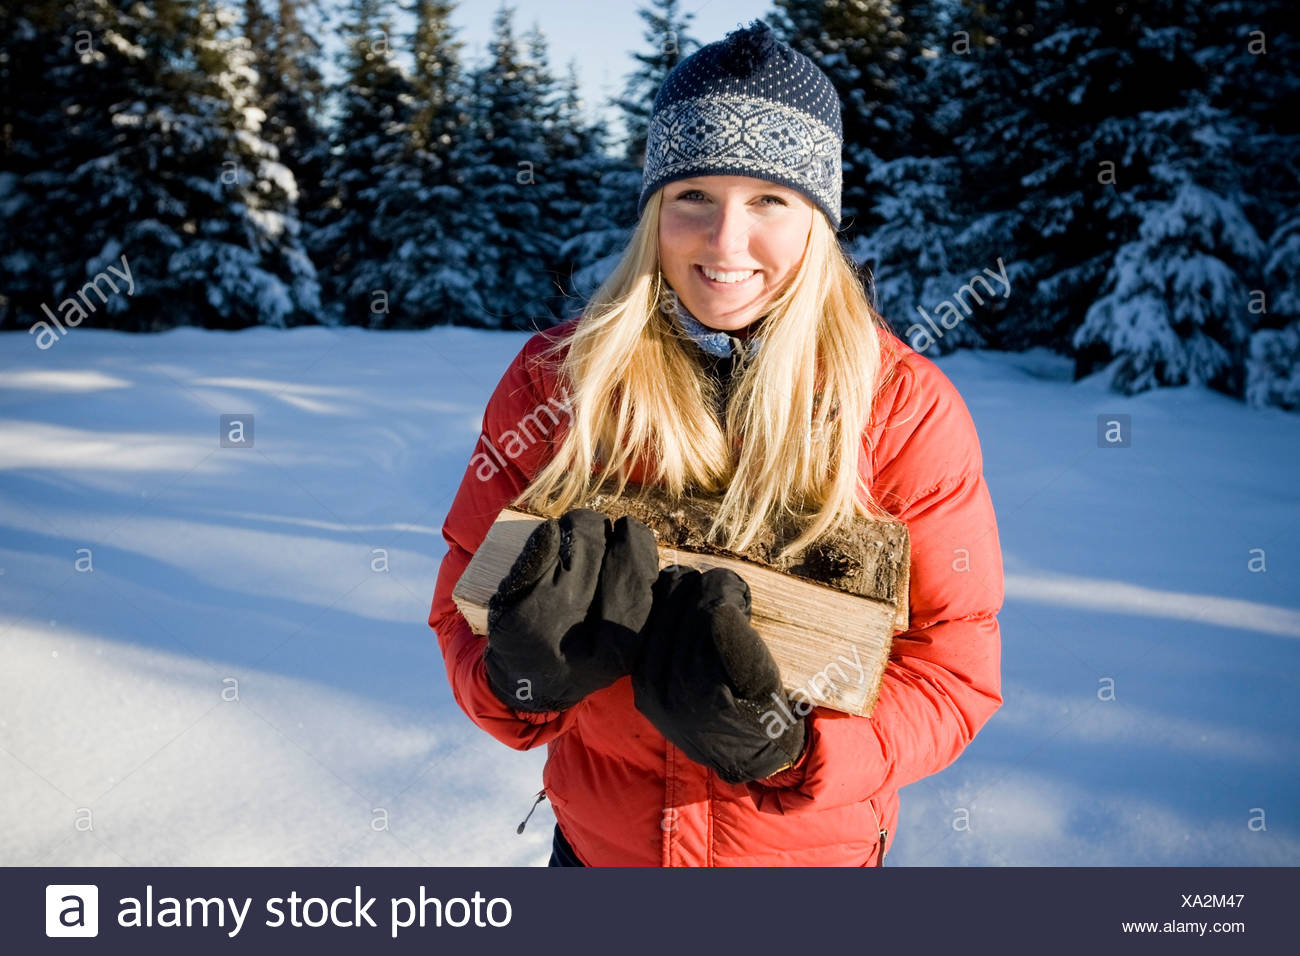 Young woman on snowshoes carries chopped wood near Homer, Alaska during winter. - Stock Image